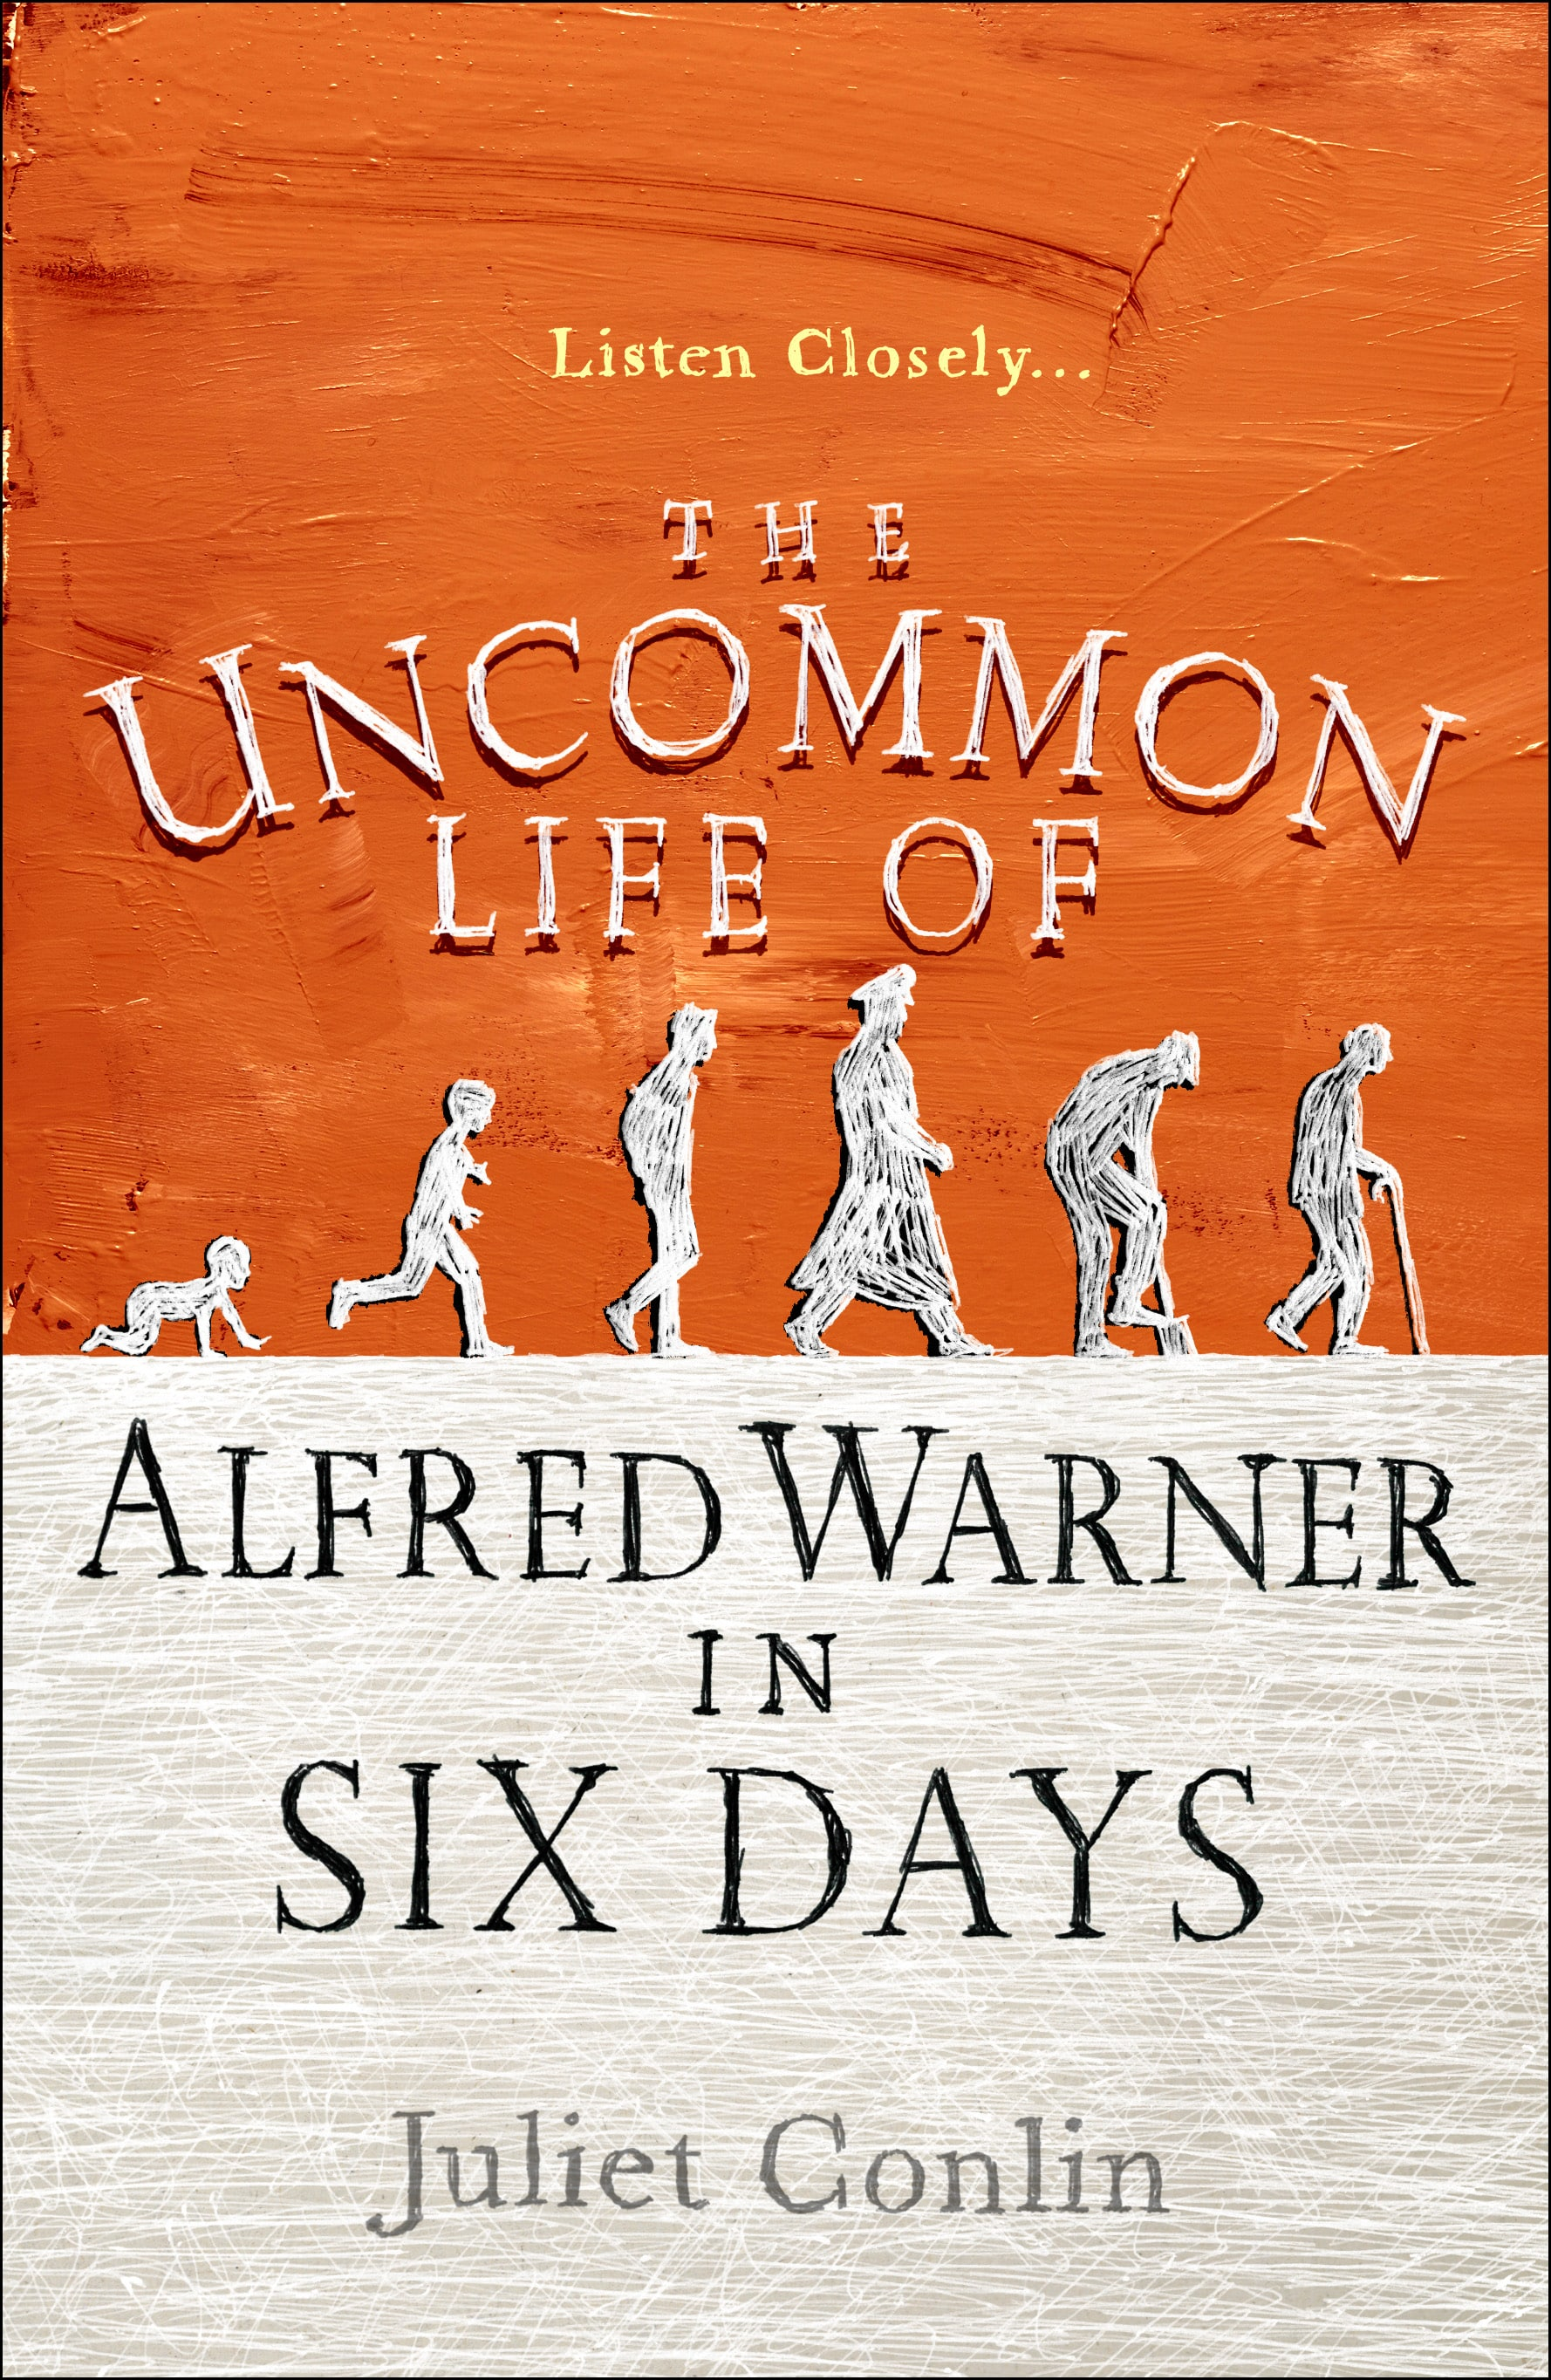 Juliet Conlin - The Uncommon Life of Alfred Warner in Six Days